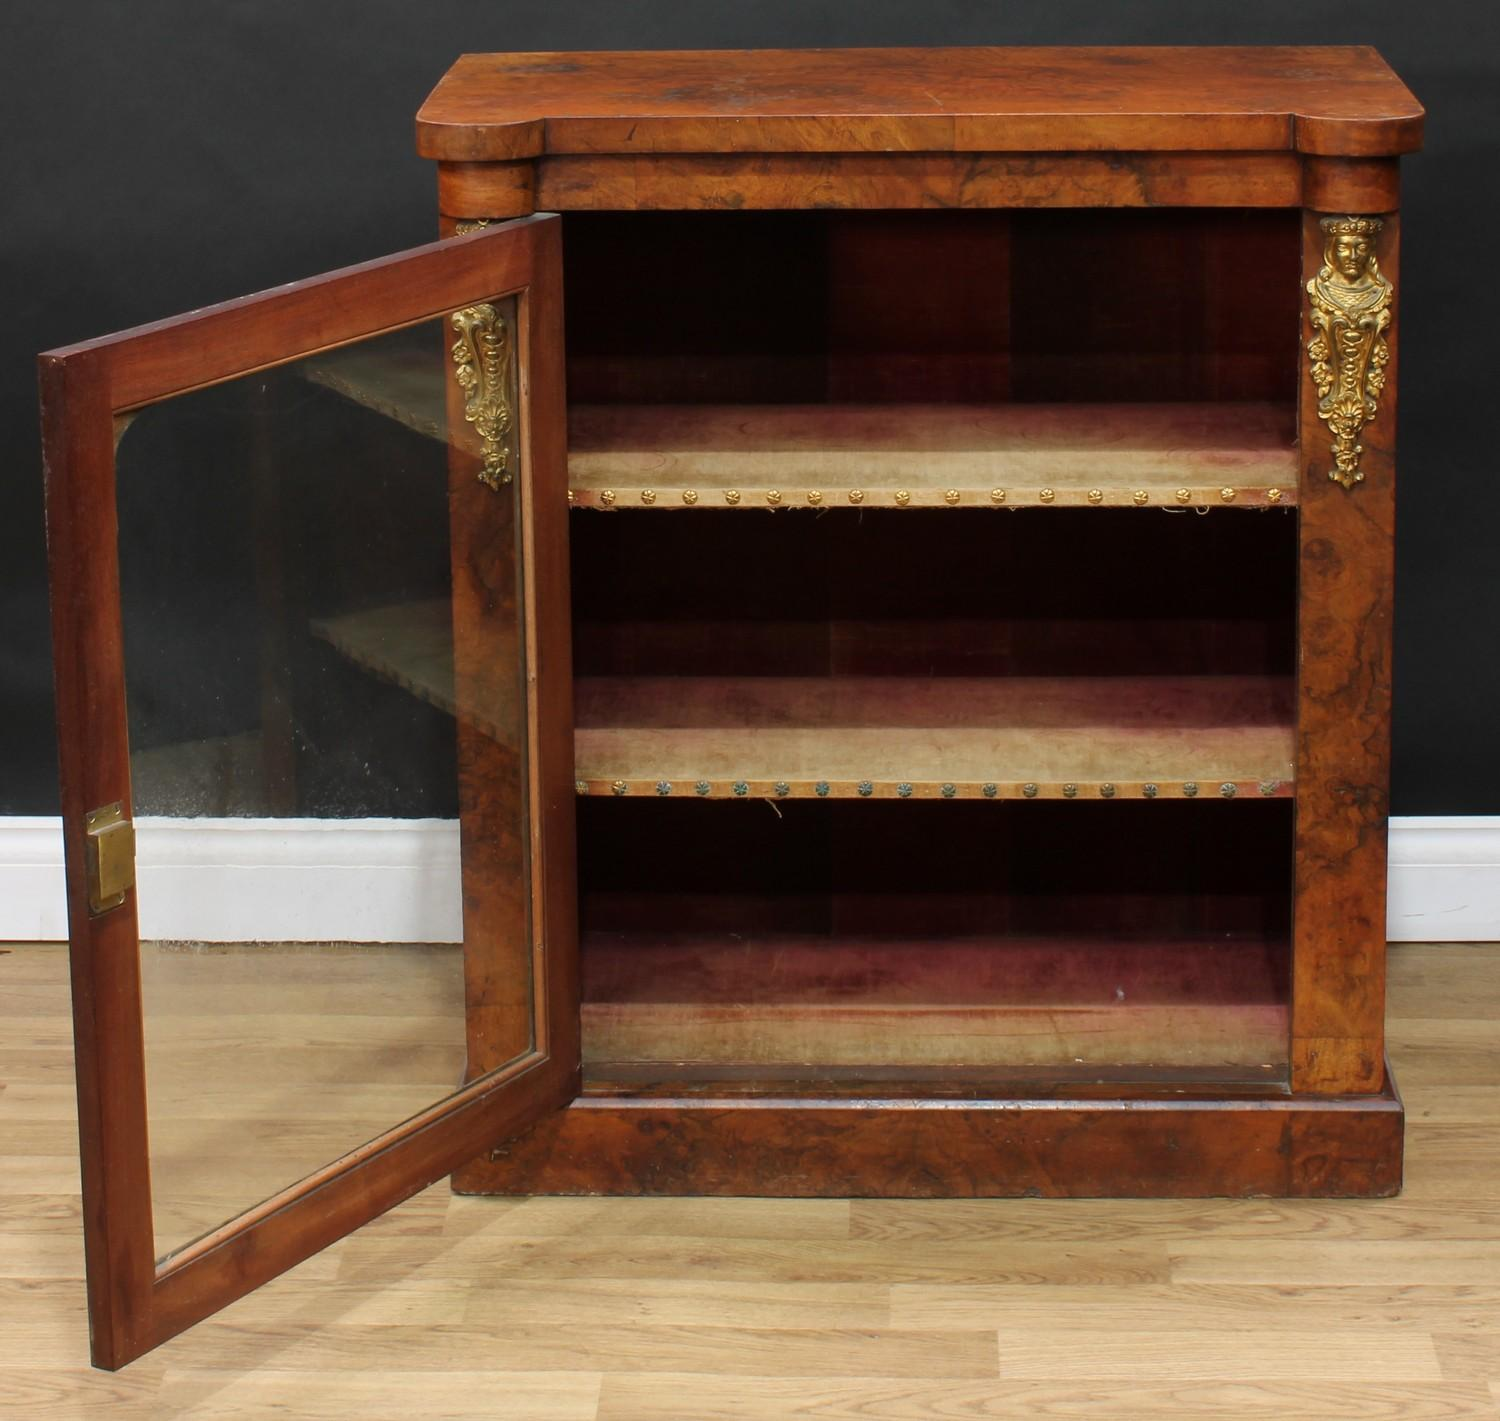 A Victorian gilt metal mounted walnut pier display cabinet or bookcase, hipped rectangular top above - Image 2 of 4